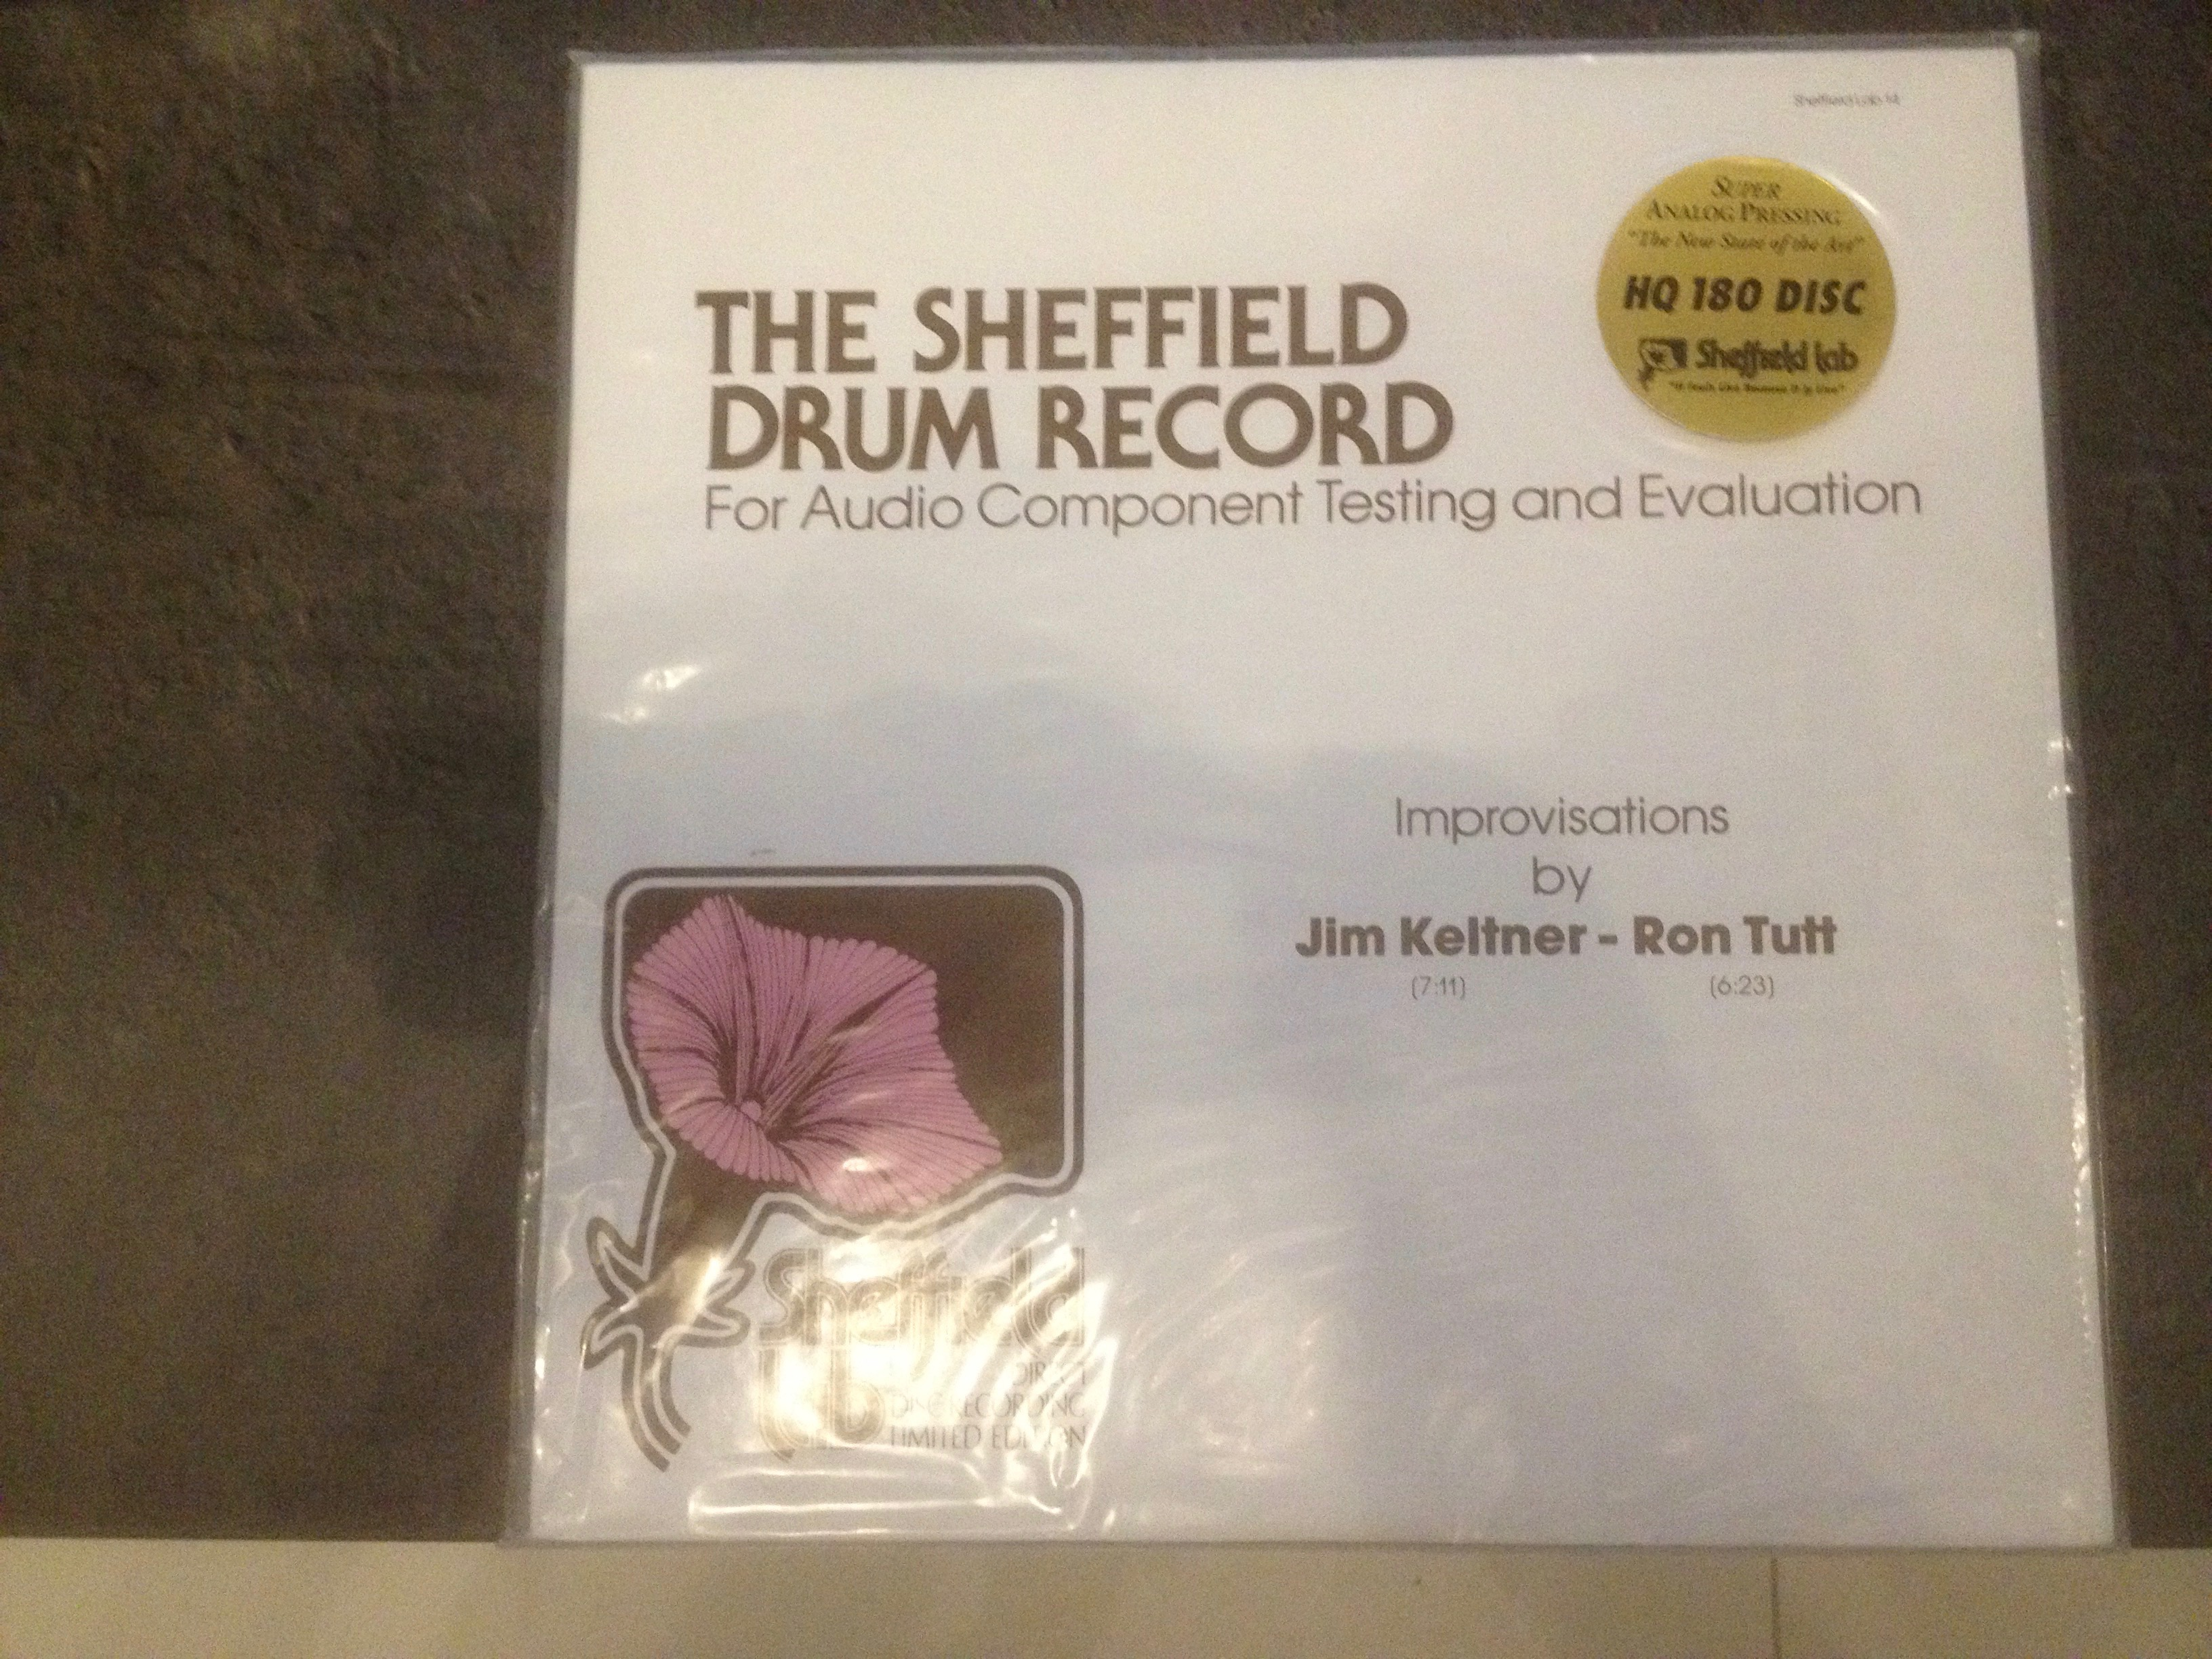 The Sheffield Drum Record